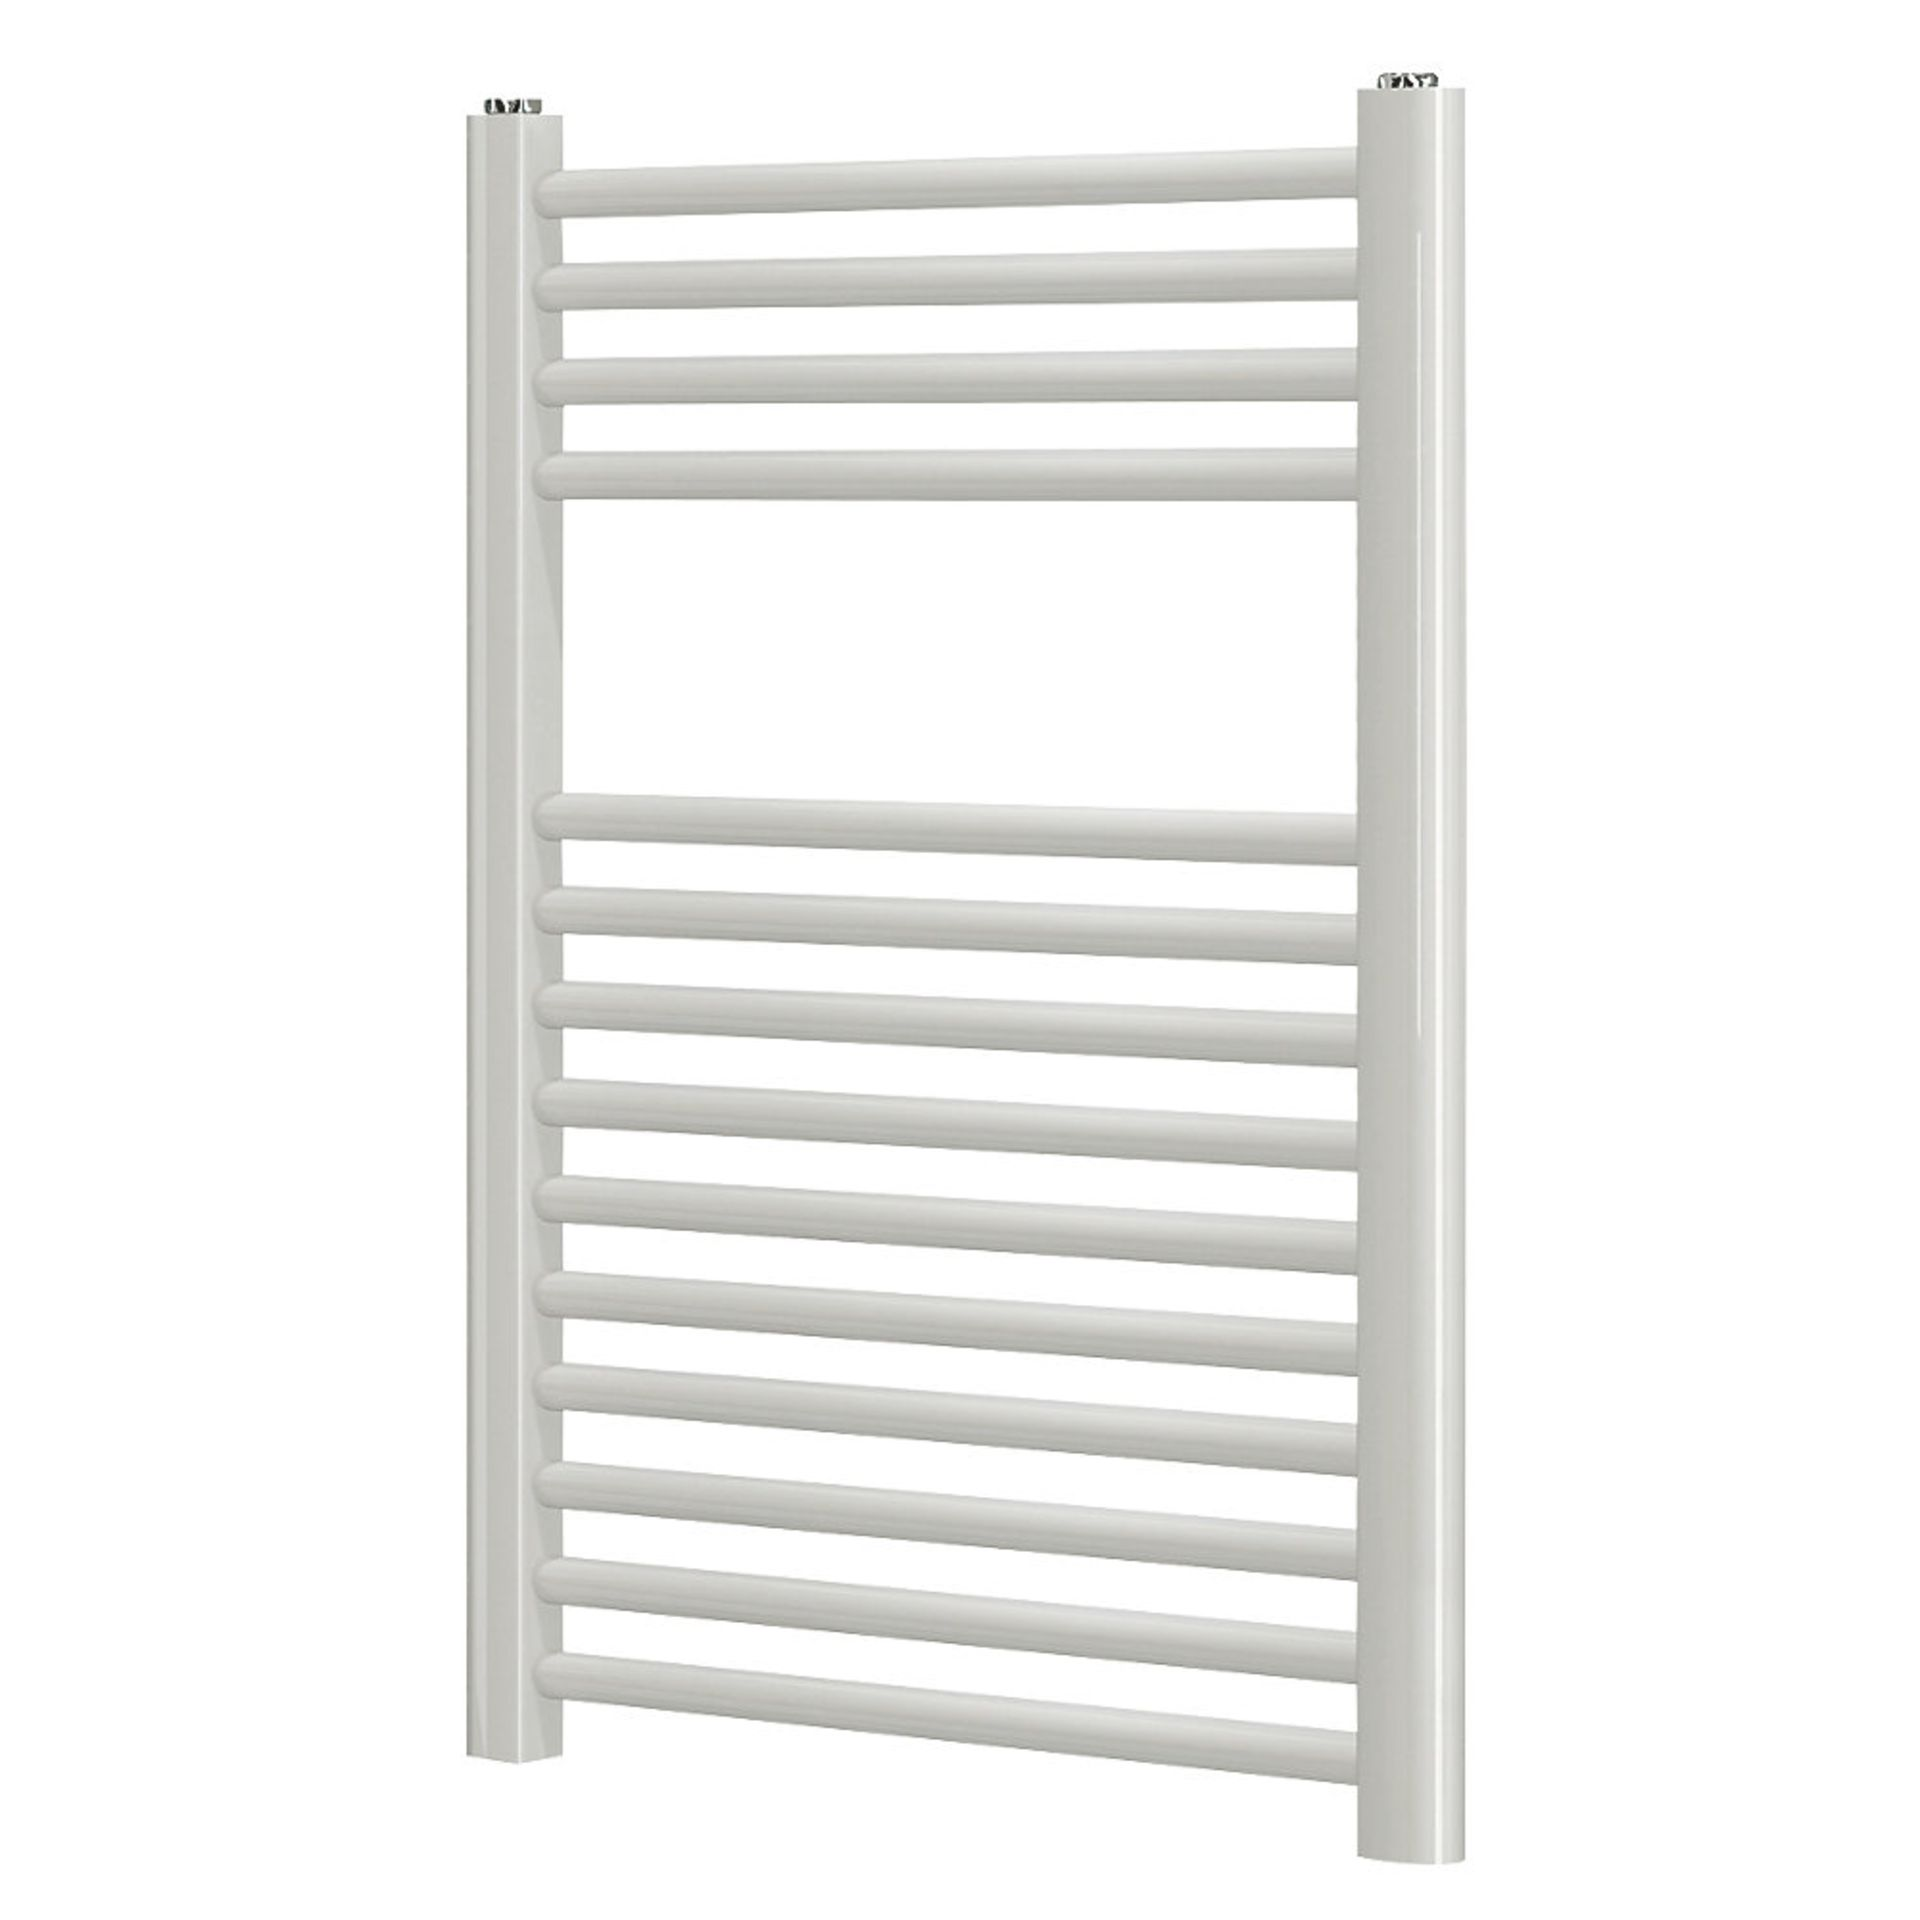 Lot 56 - (EY154) 700x400mm Flat White Towel Radiator. Flat Front Powder-Coated Mild Steel Construction.